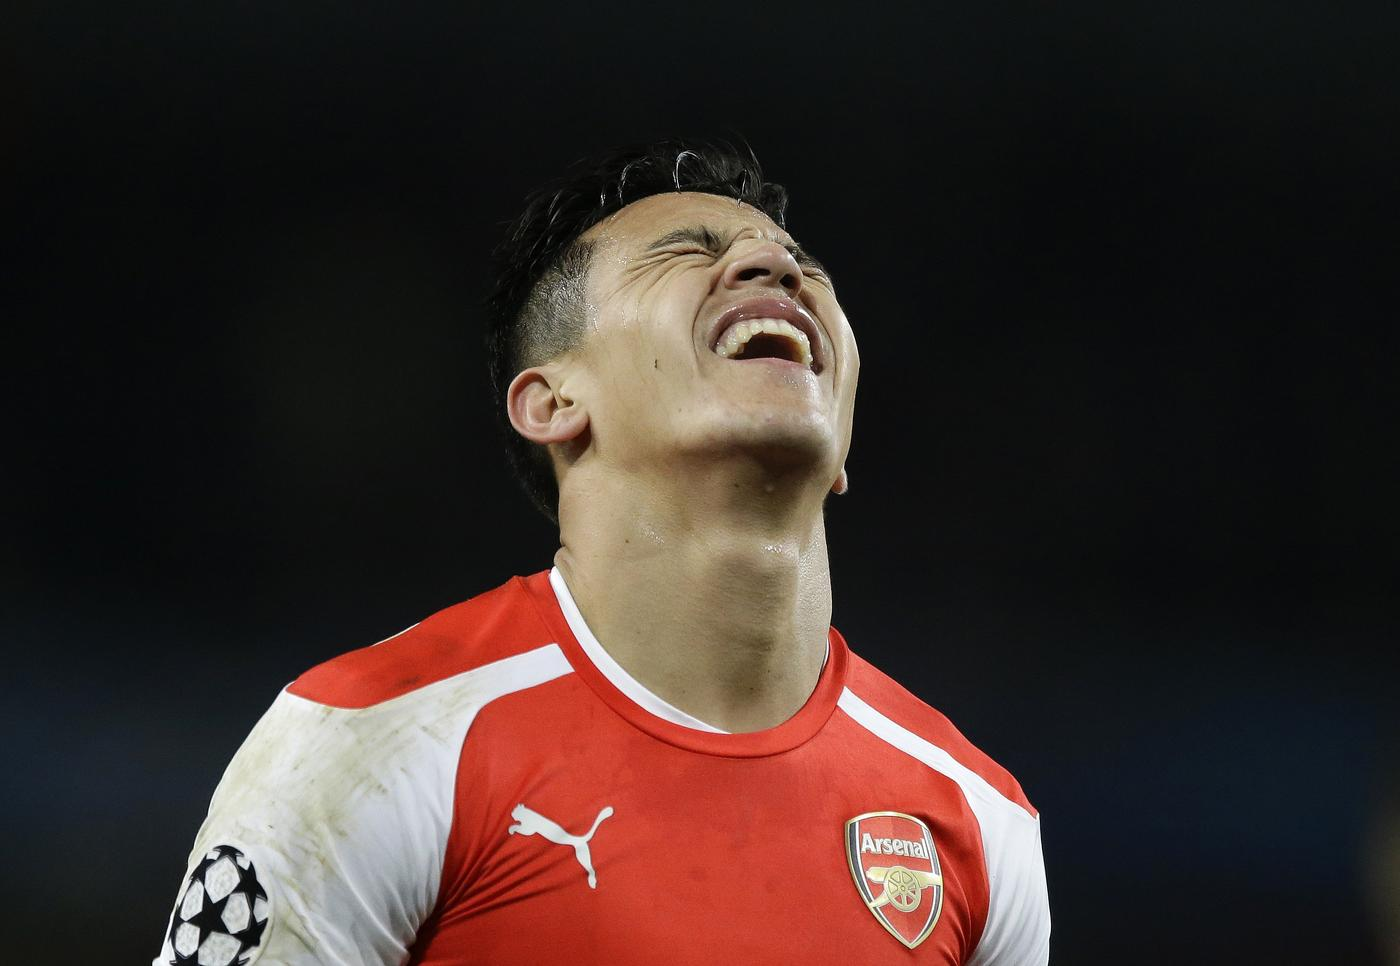 Arsenal fans lose their heads over inevitable last-16 exit after getting Bayern Munich in Champions League draw